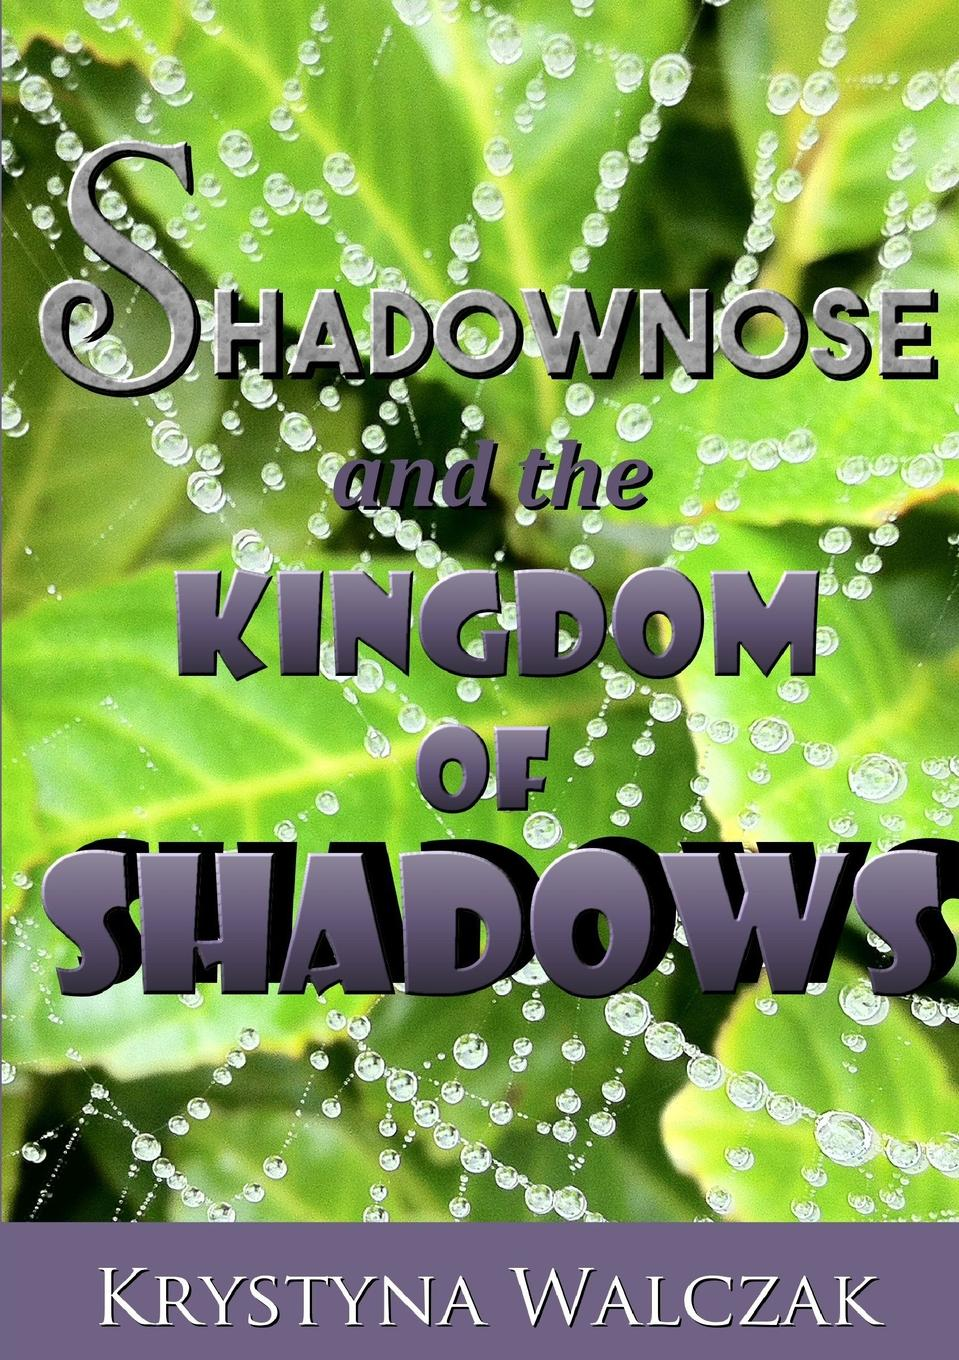 Krystyna Walczak Shadownose and the Kingdom of Shadows huge dildo with suction cup big fake dildo realistic penis ribbed stimulate anal dildo adult sex toys for women masturbation